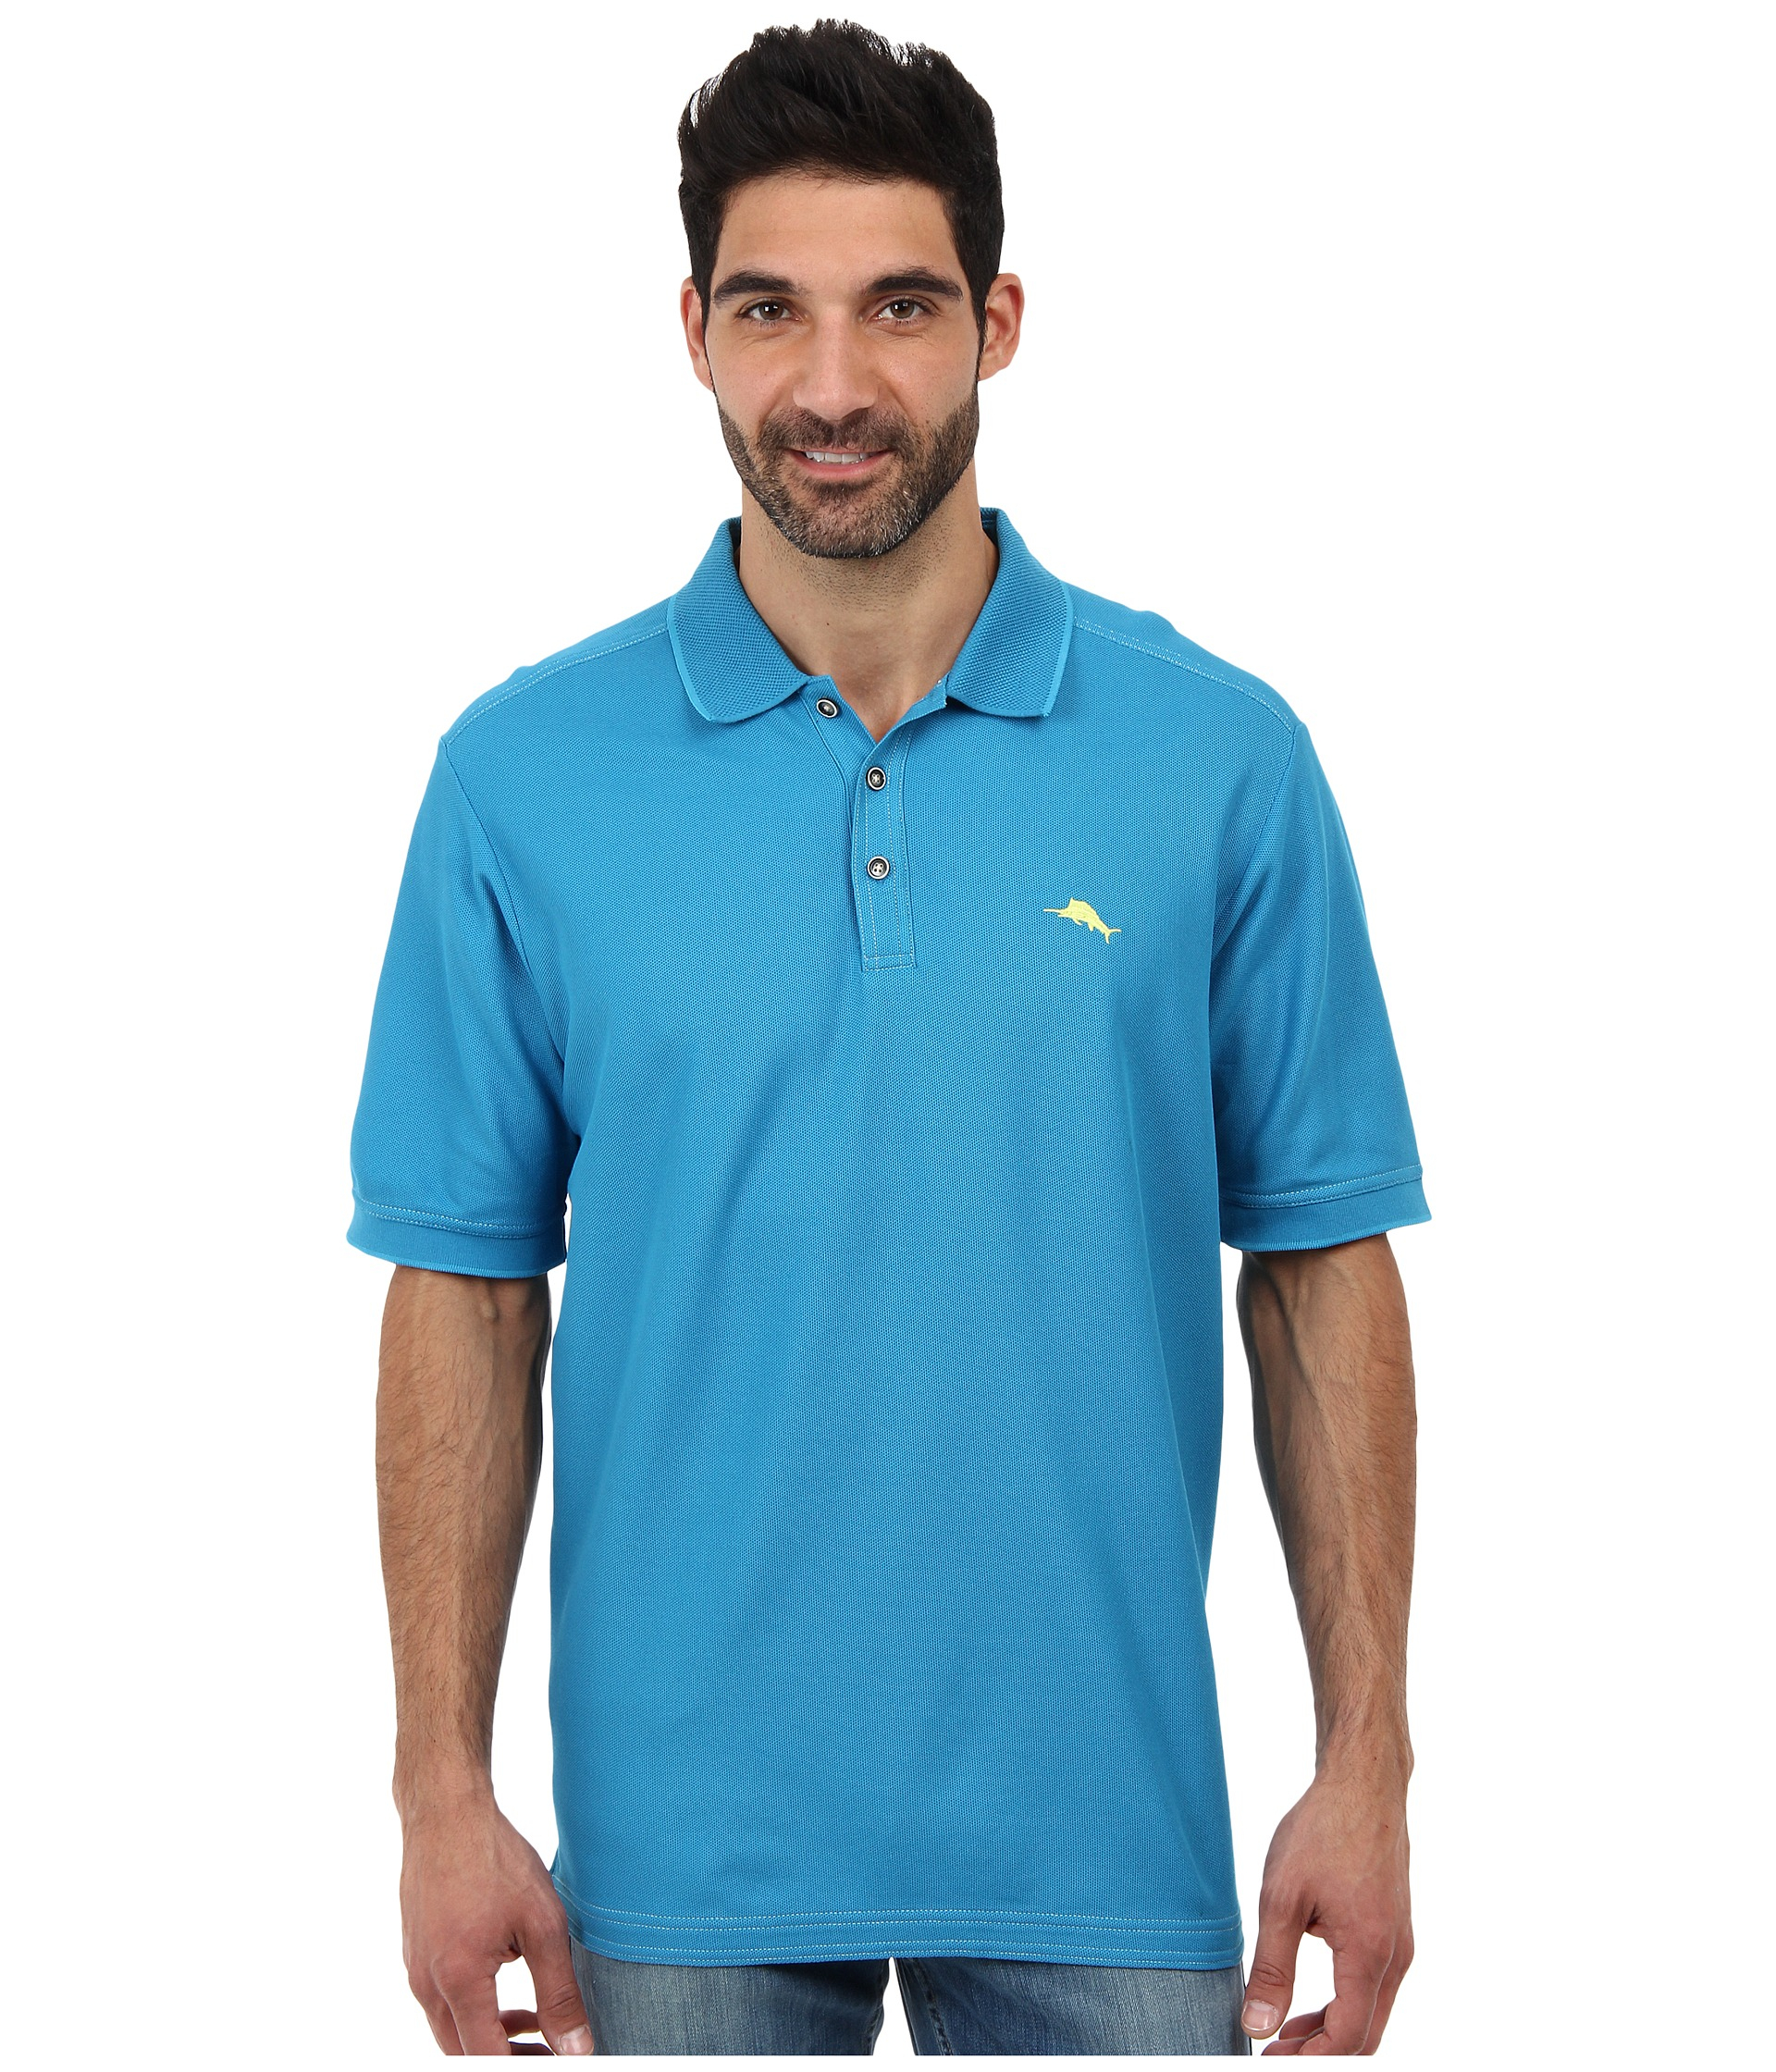 Tommy Bahama The Emfielder Polo Shirt In Blue For Men